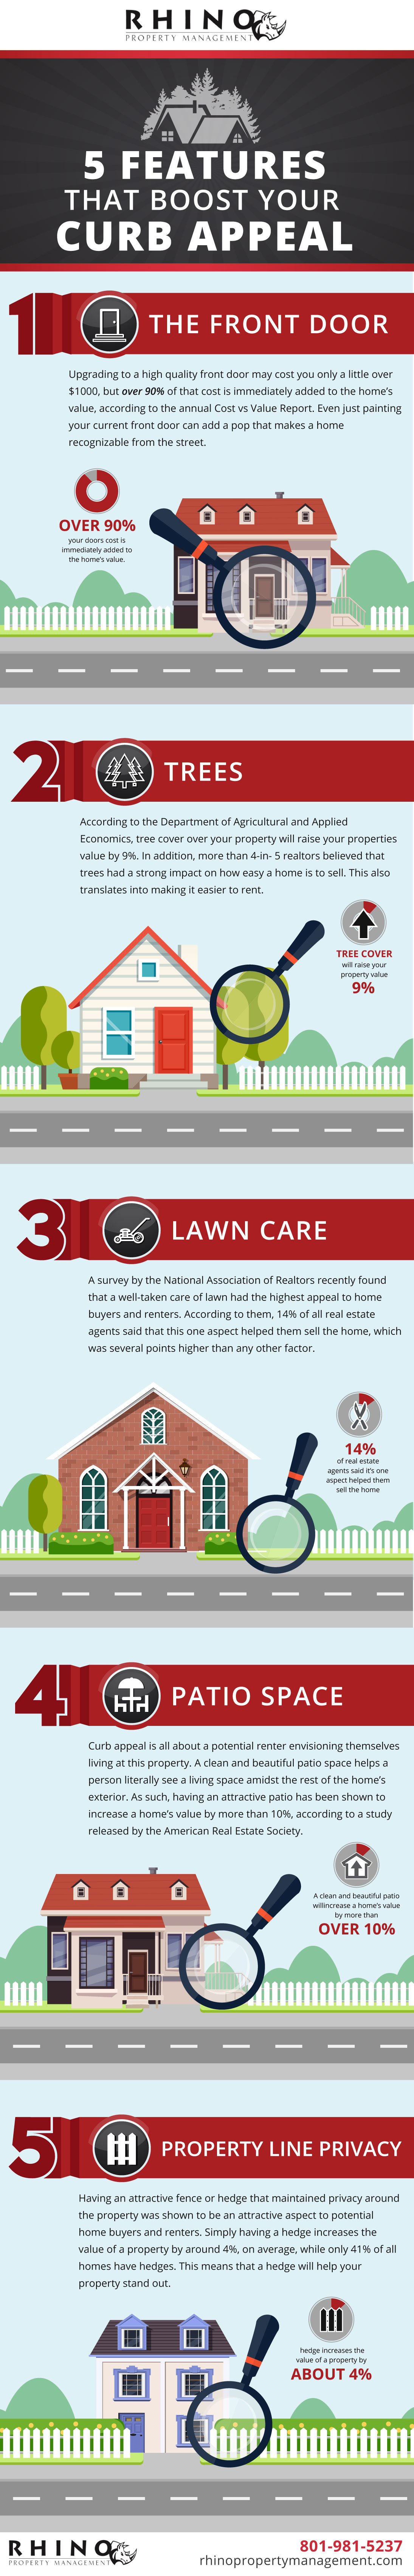 boost curb appeal info graphic